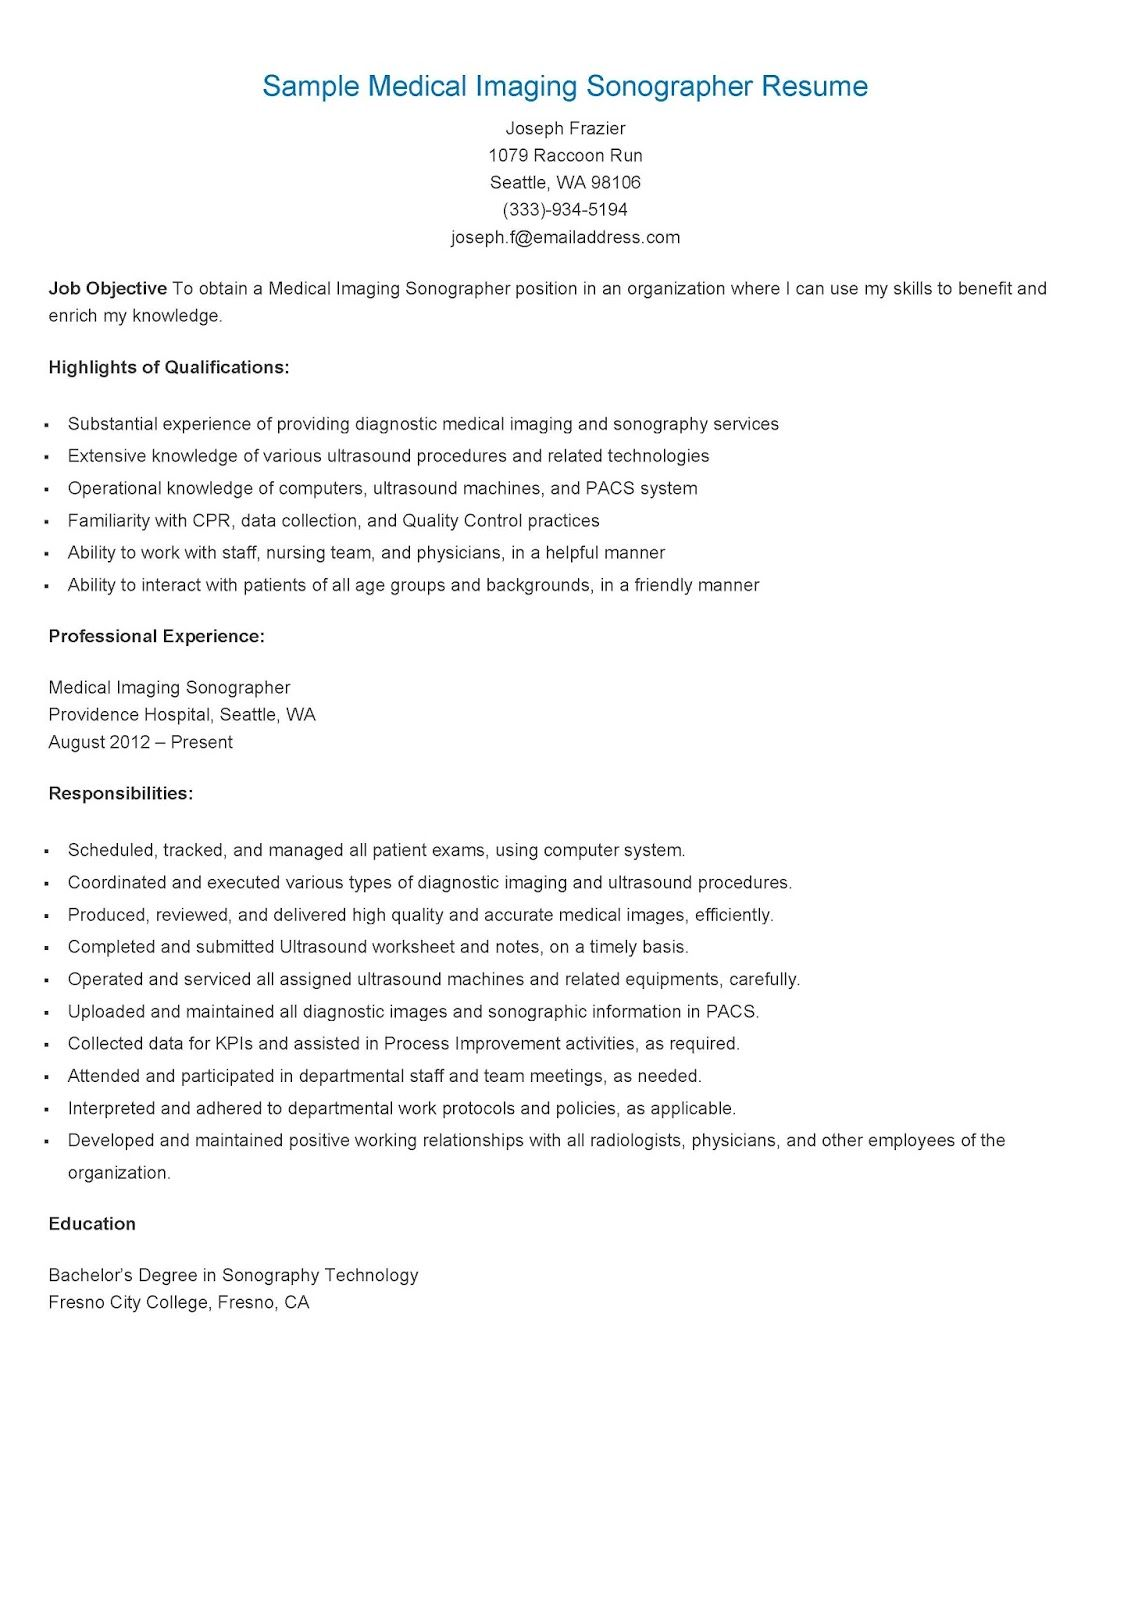 Sample Medical Imaging Sonographer Resume Resume Samples Resame